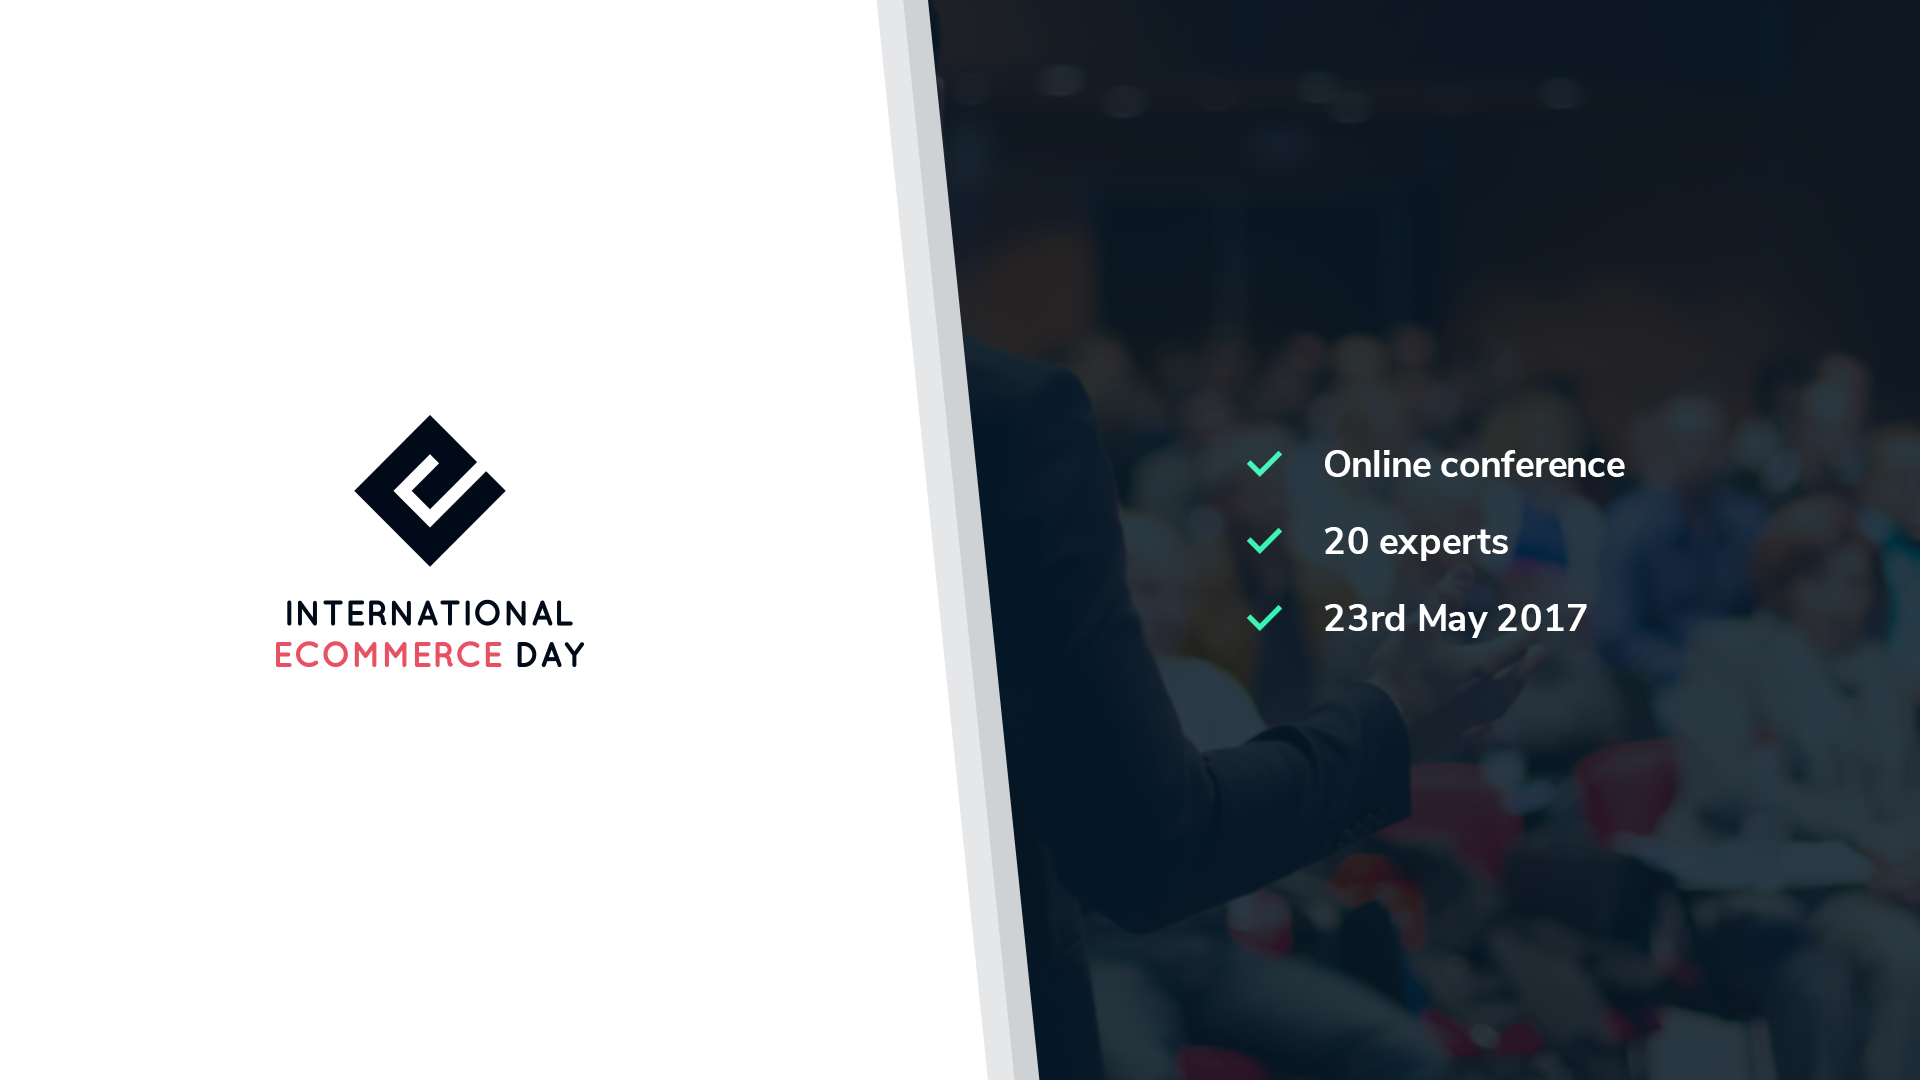 If you want to grow your business join the International Ecommerce Day